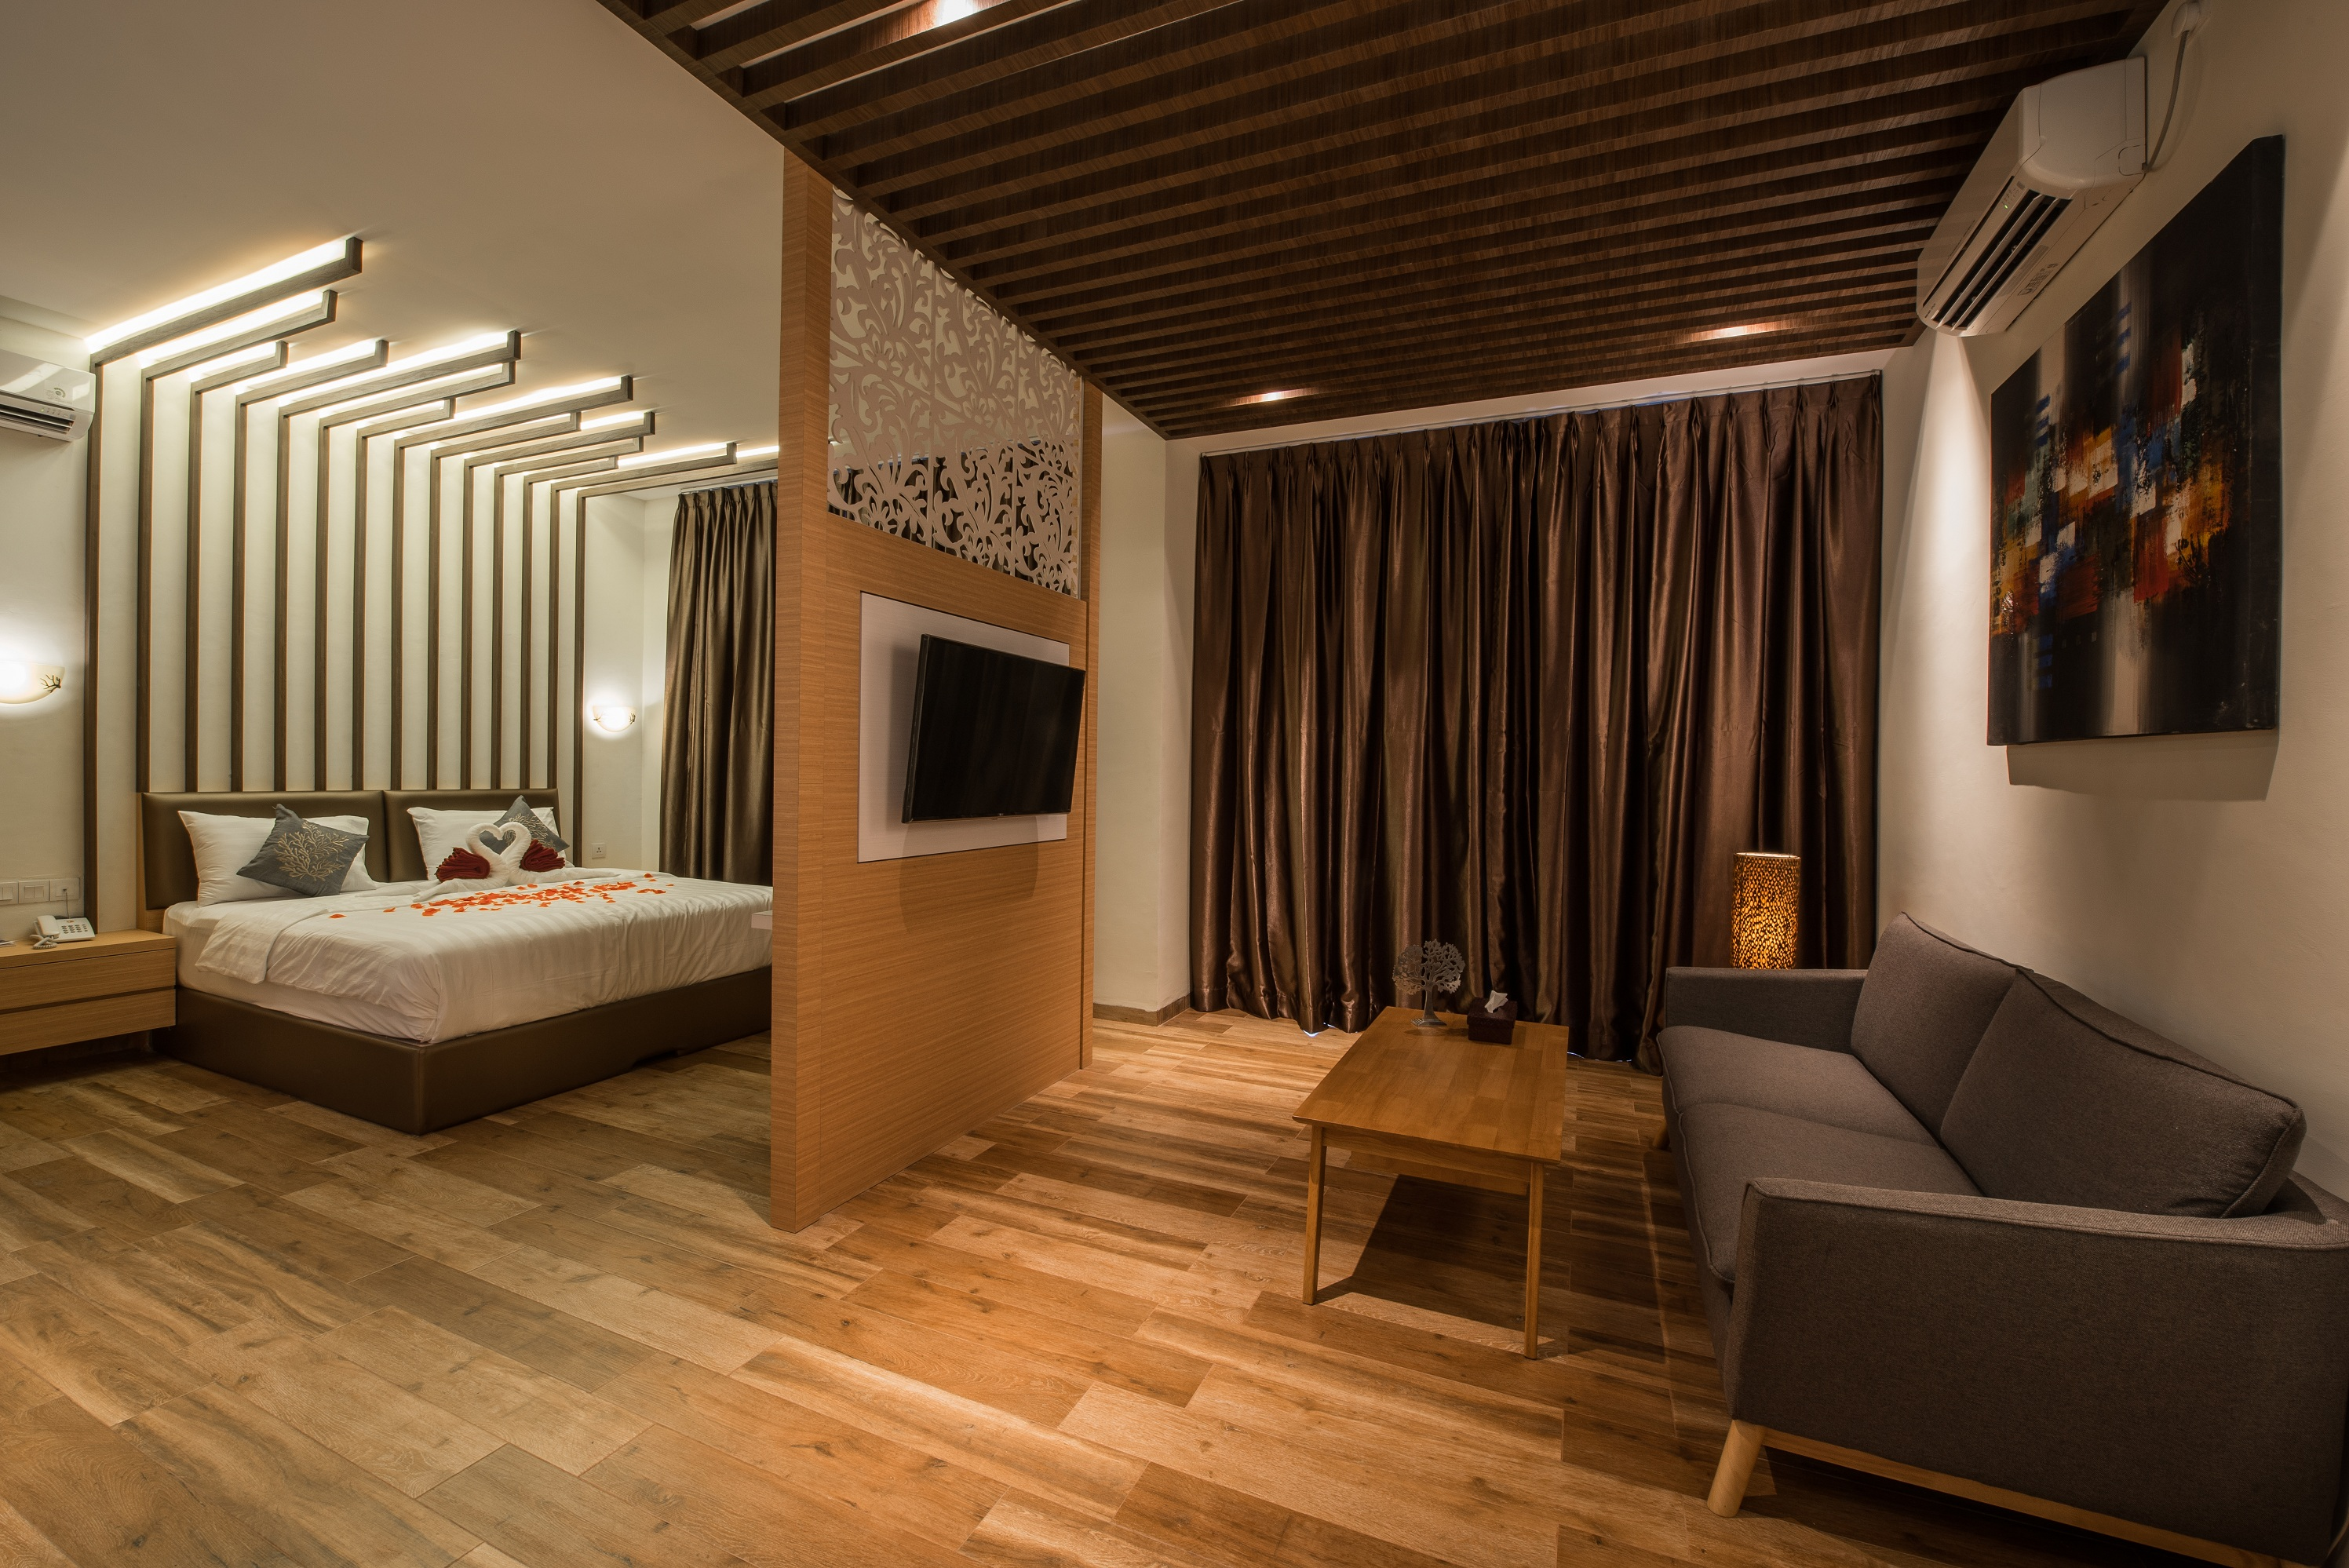 [Batam] WODA Villa & Spa + Ferry | BEST Deal for OVER-WATER Villa with  RELAXING SPA Experiences